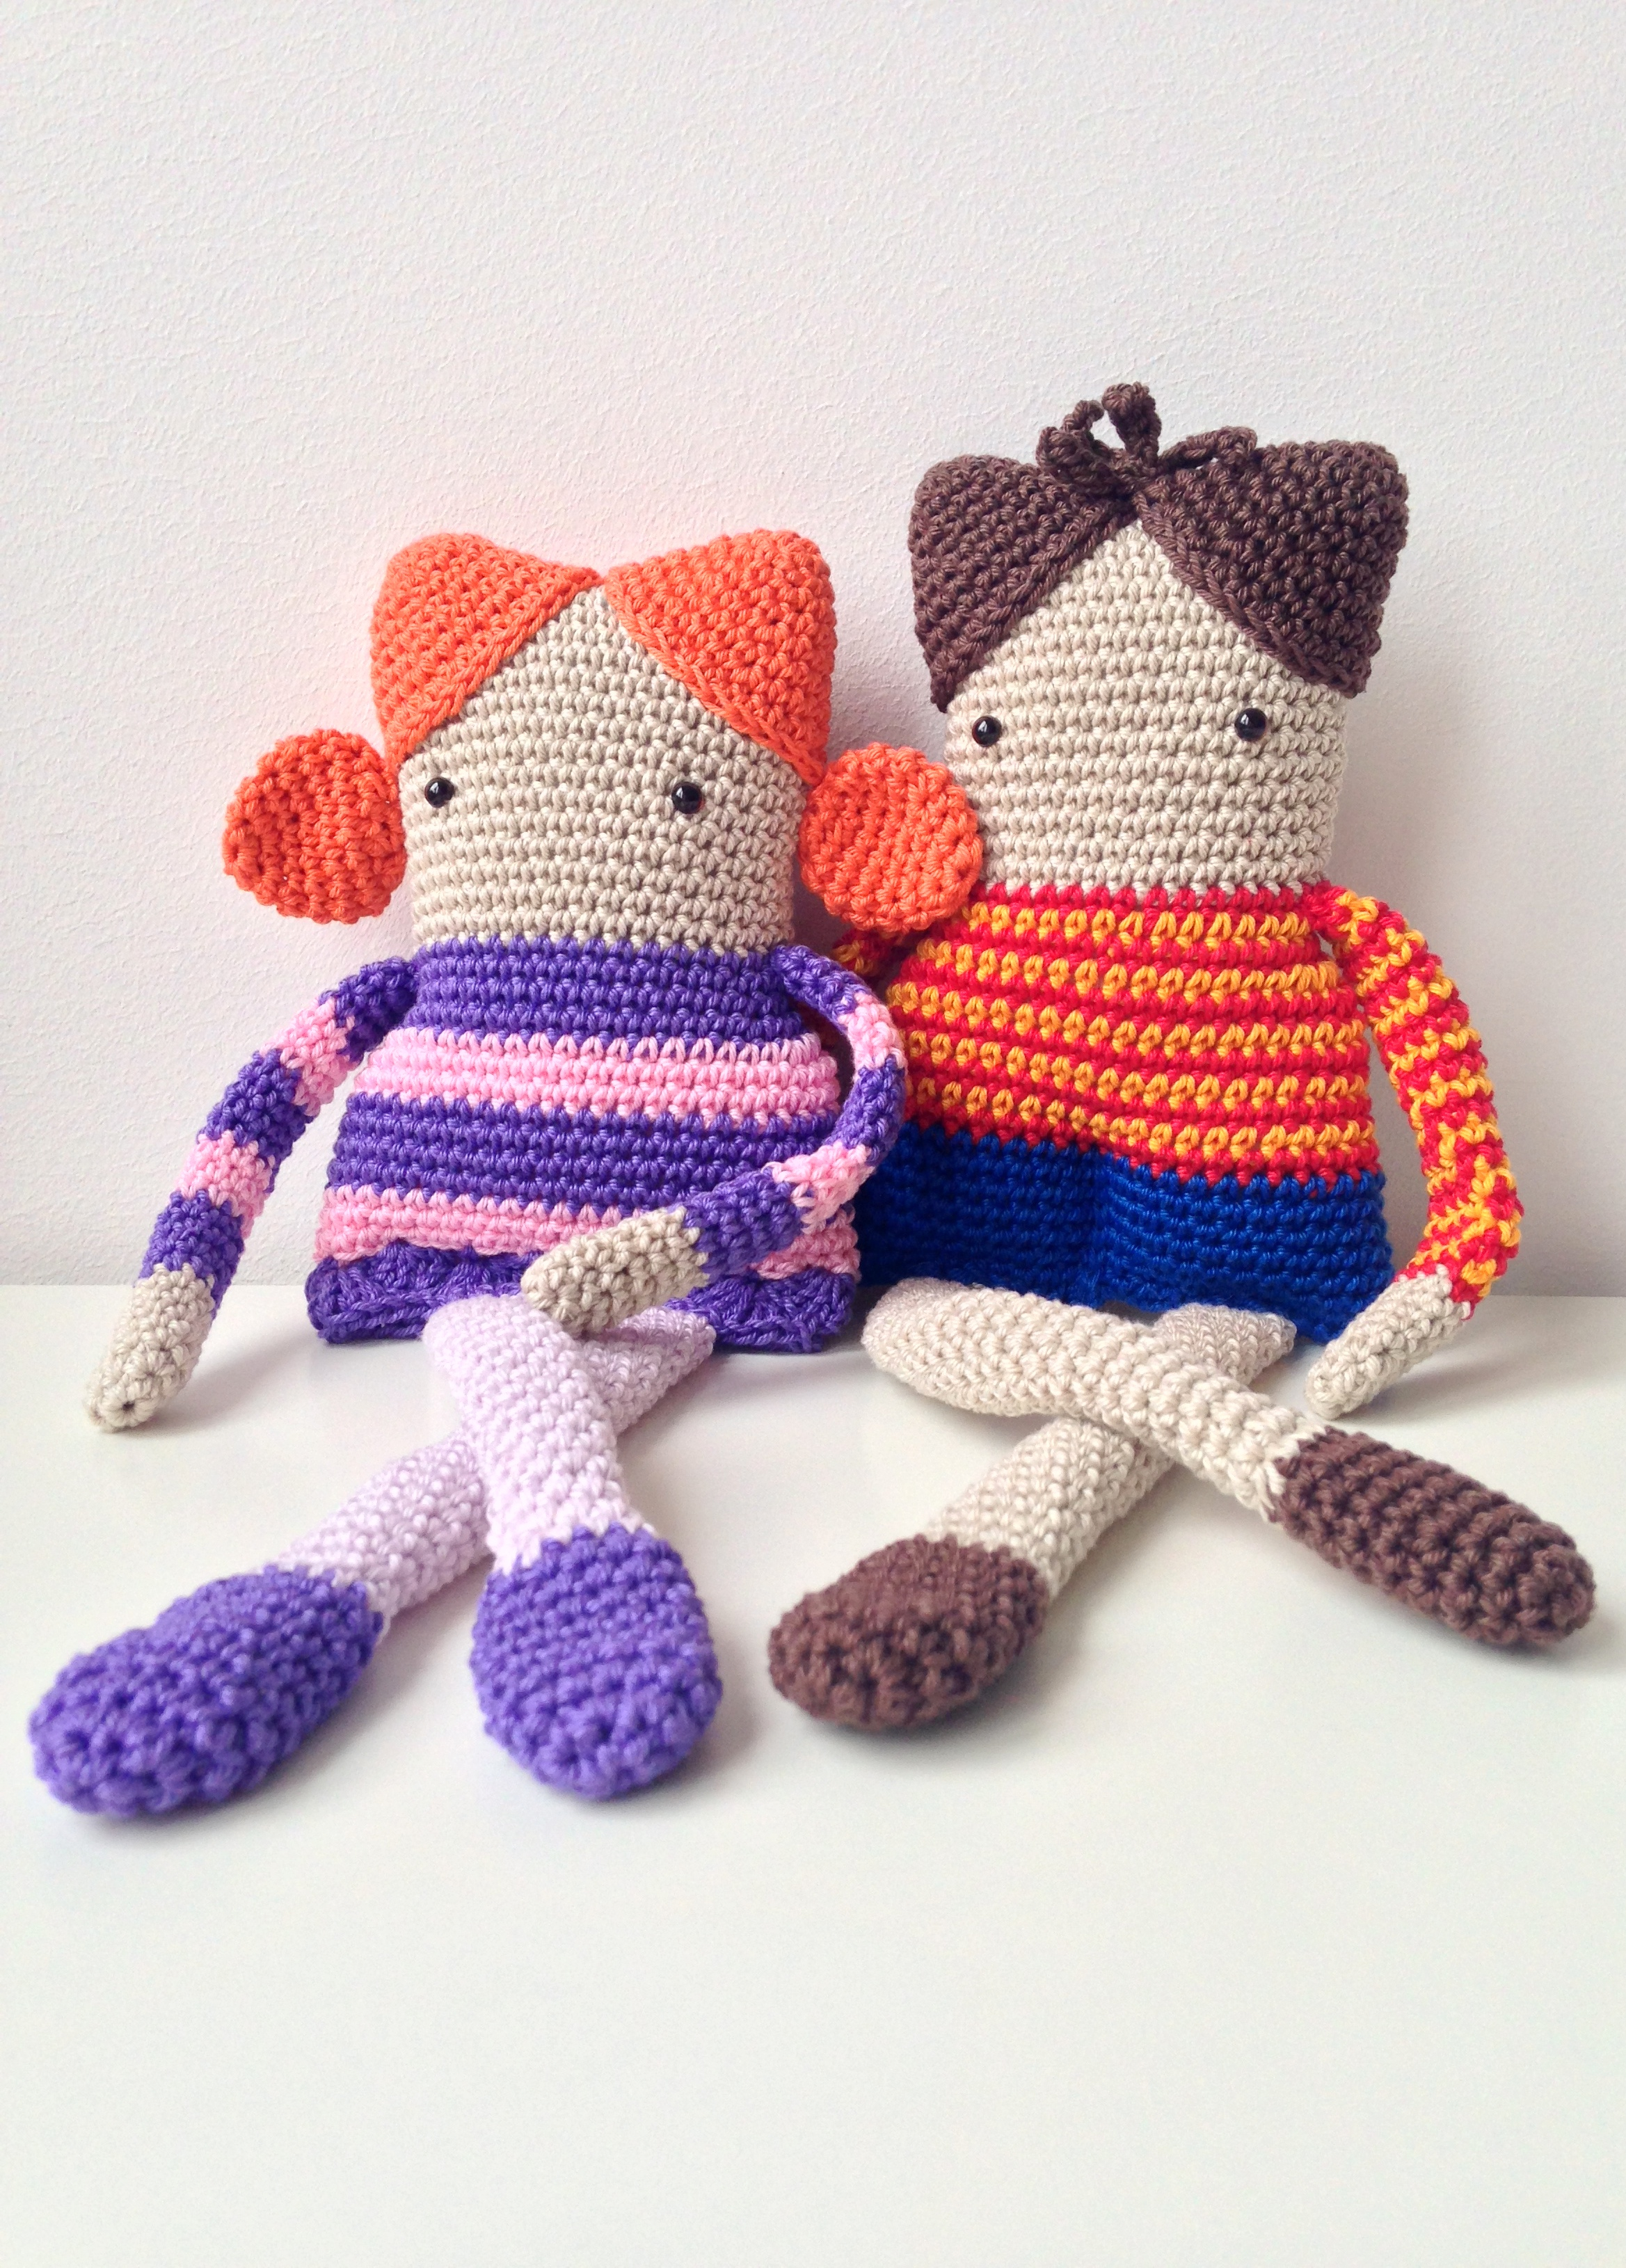 Long-legged amigurumi toys - Amigurumi Today | 3260x2337